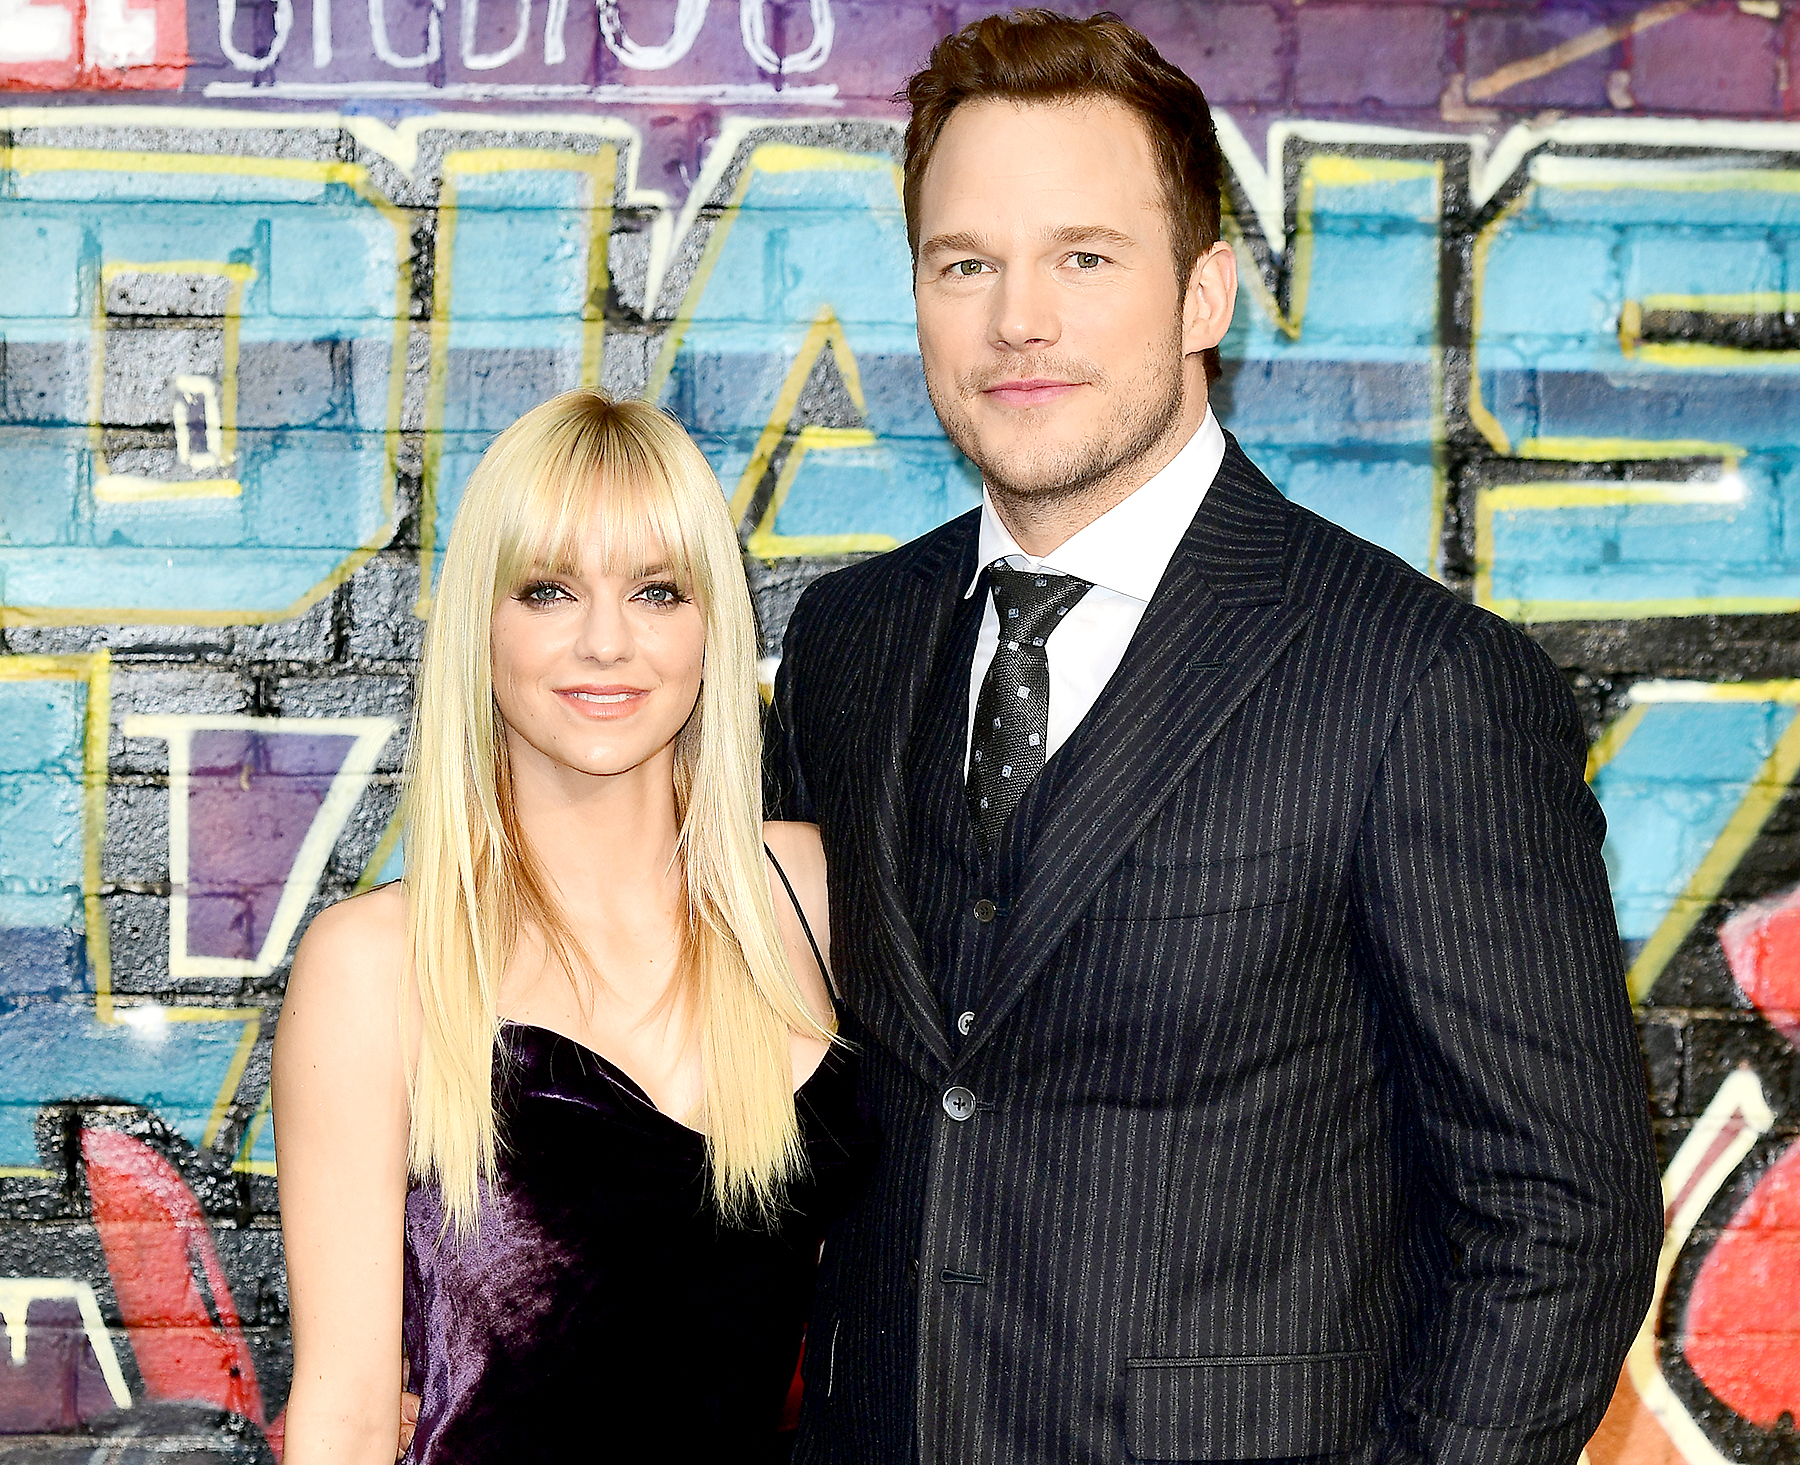 Chris Pratt and Anna Faris attended The European Premiere of Guardians of the Galaxy Vol. 2 held at the Eventim Apollo, London.